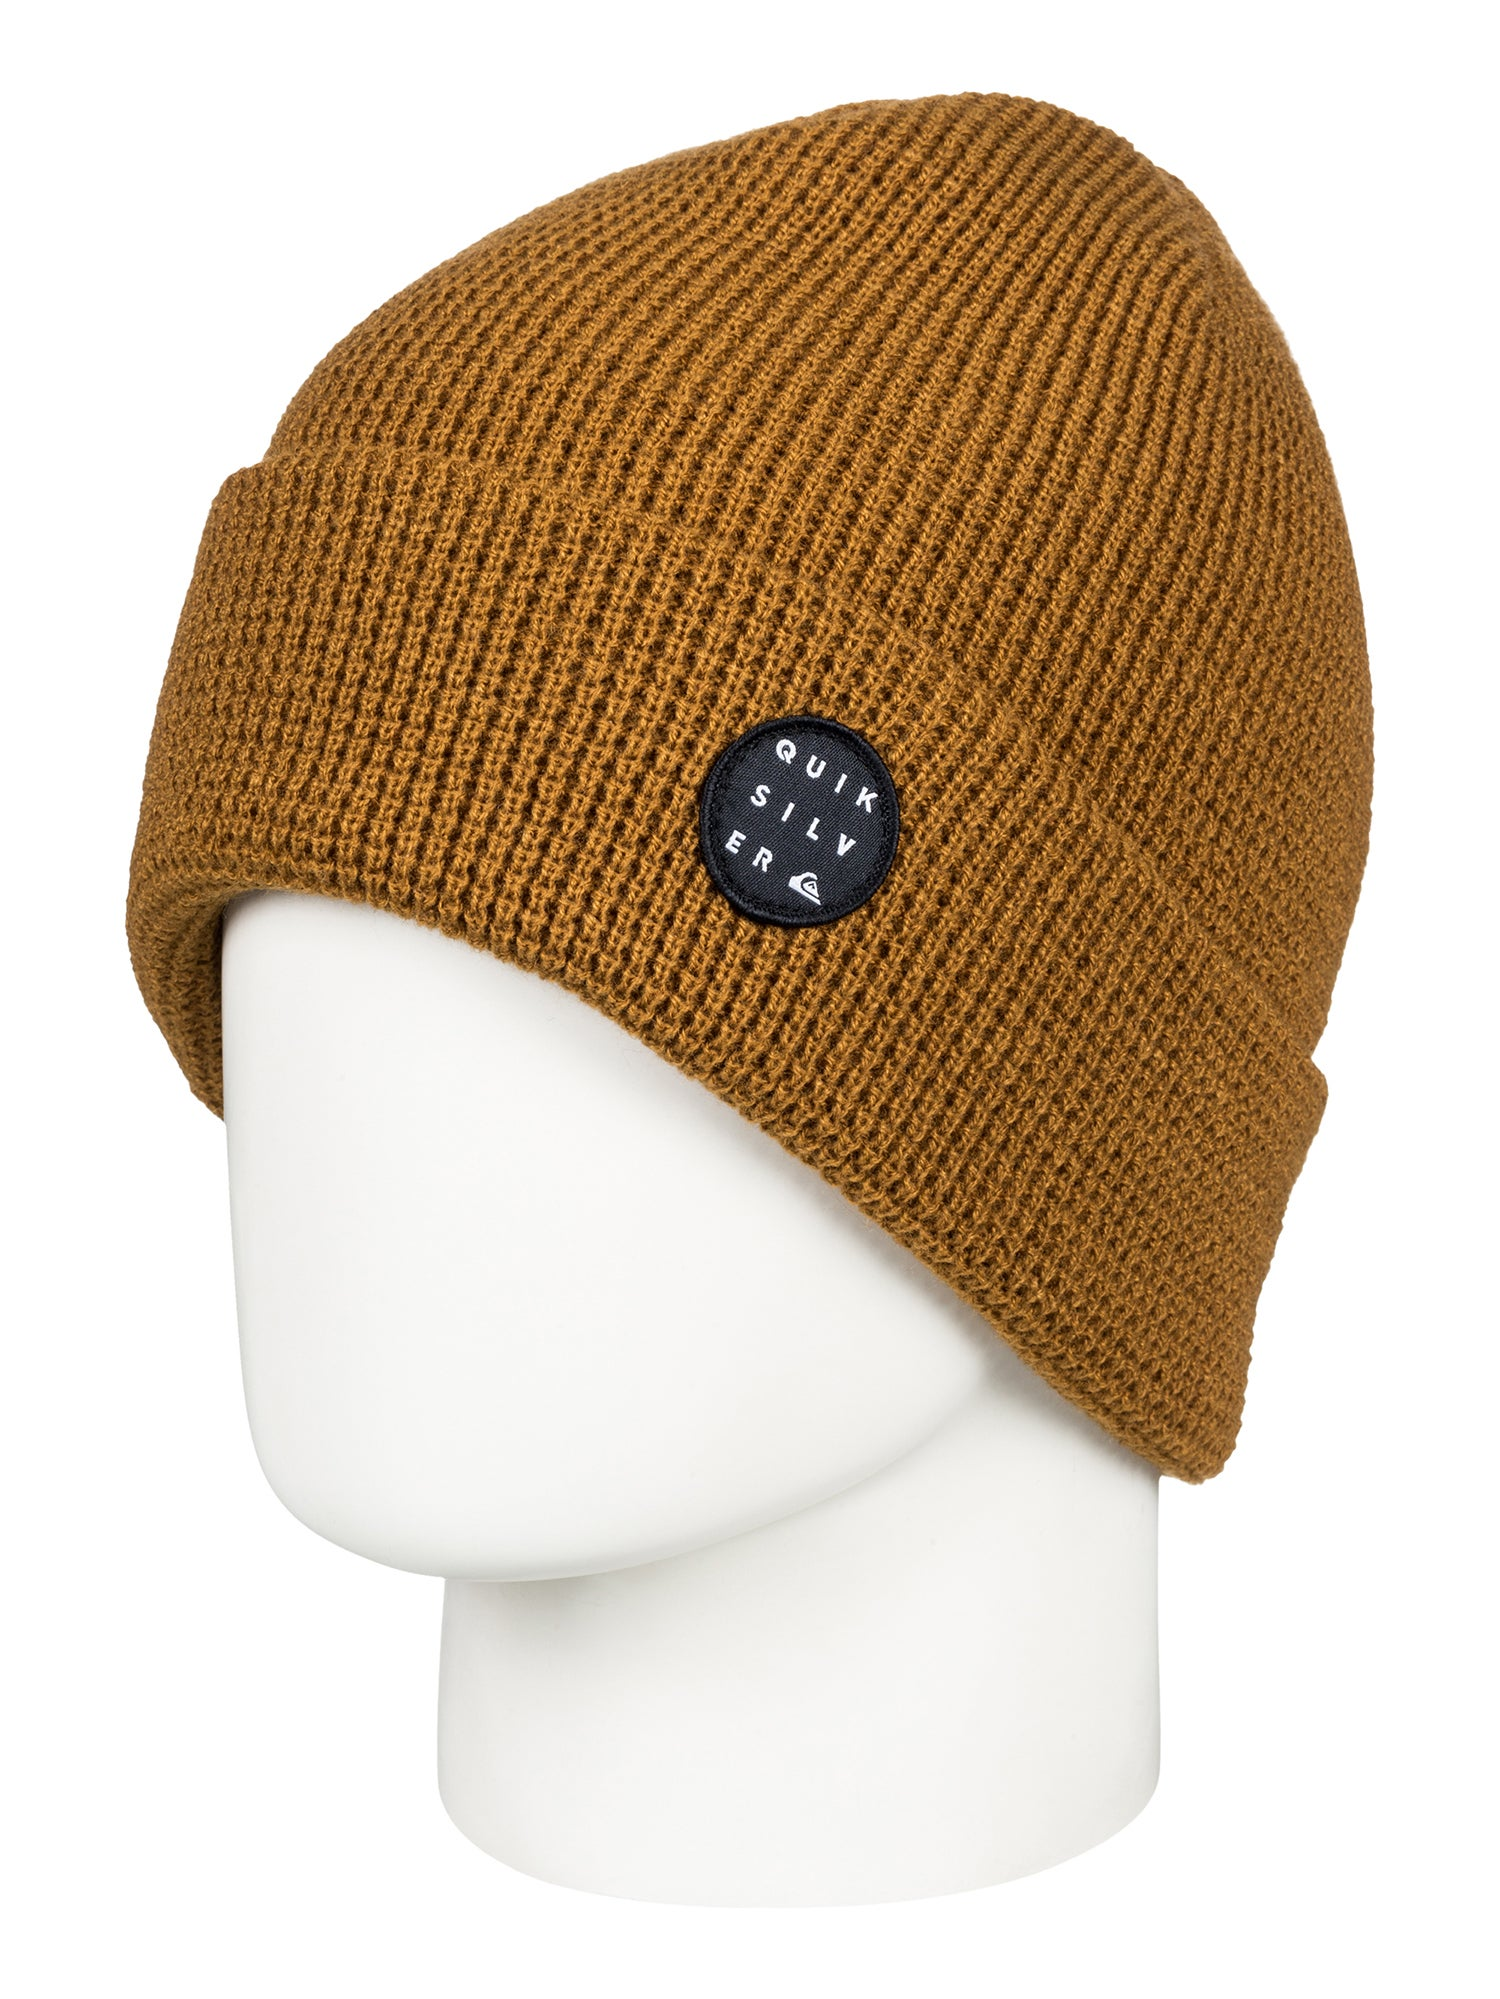 be6f940f1d1 Quiksilver Local Mens Headwear Beanie Hat - Golden Brown One Size